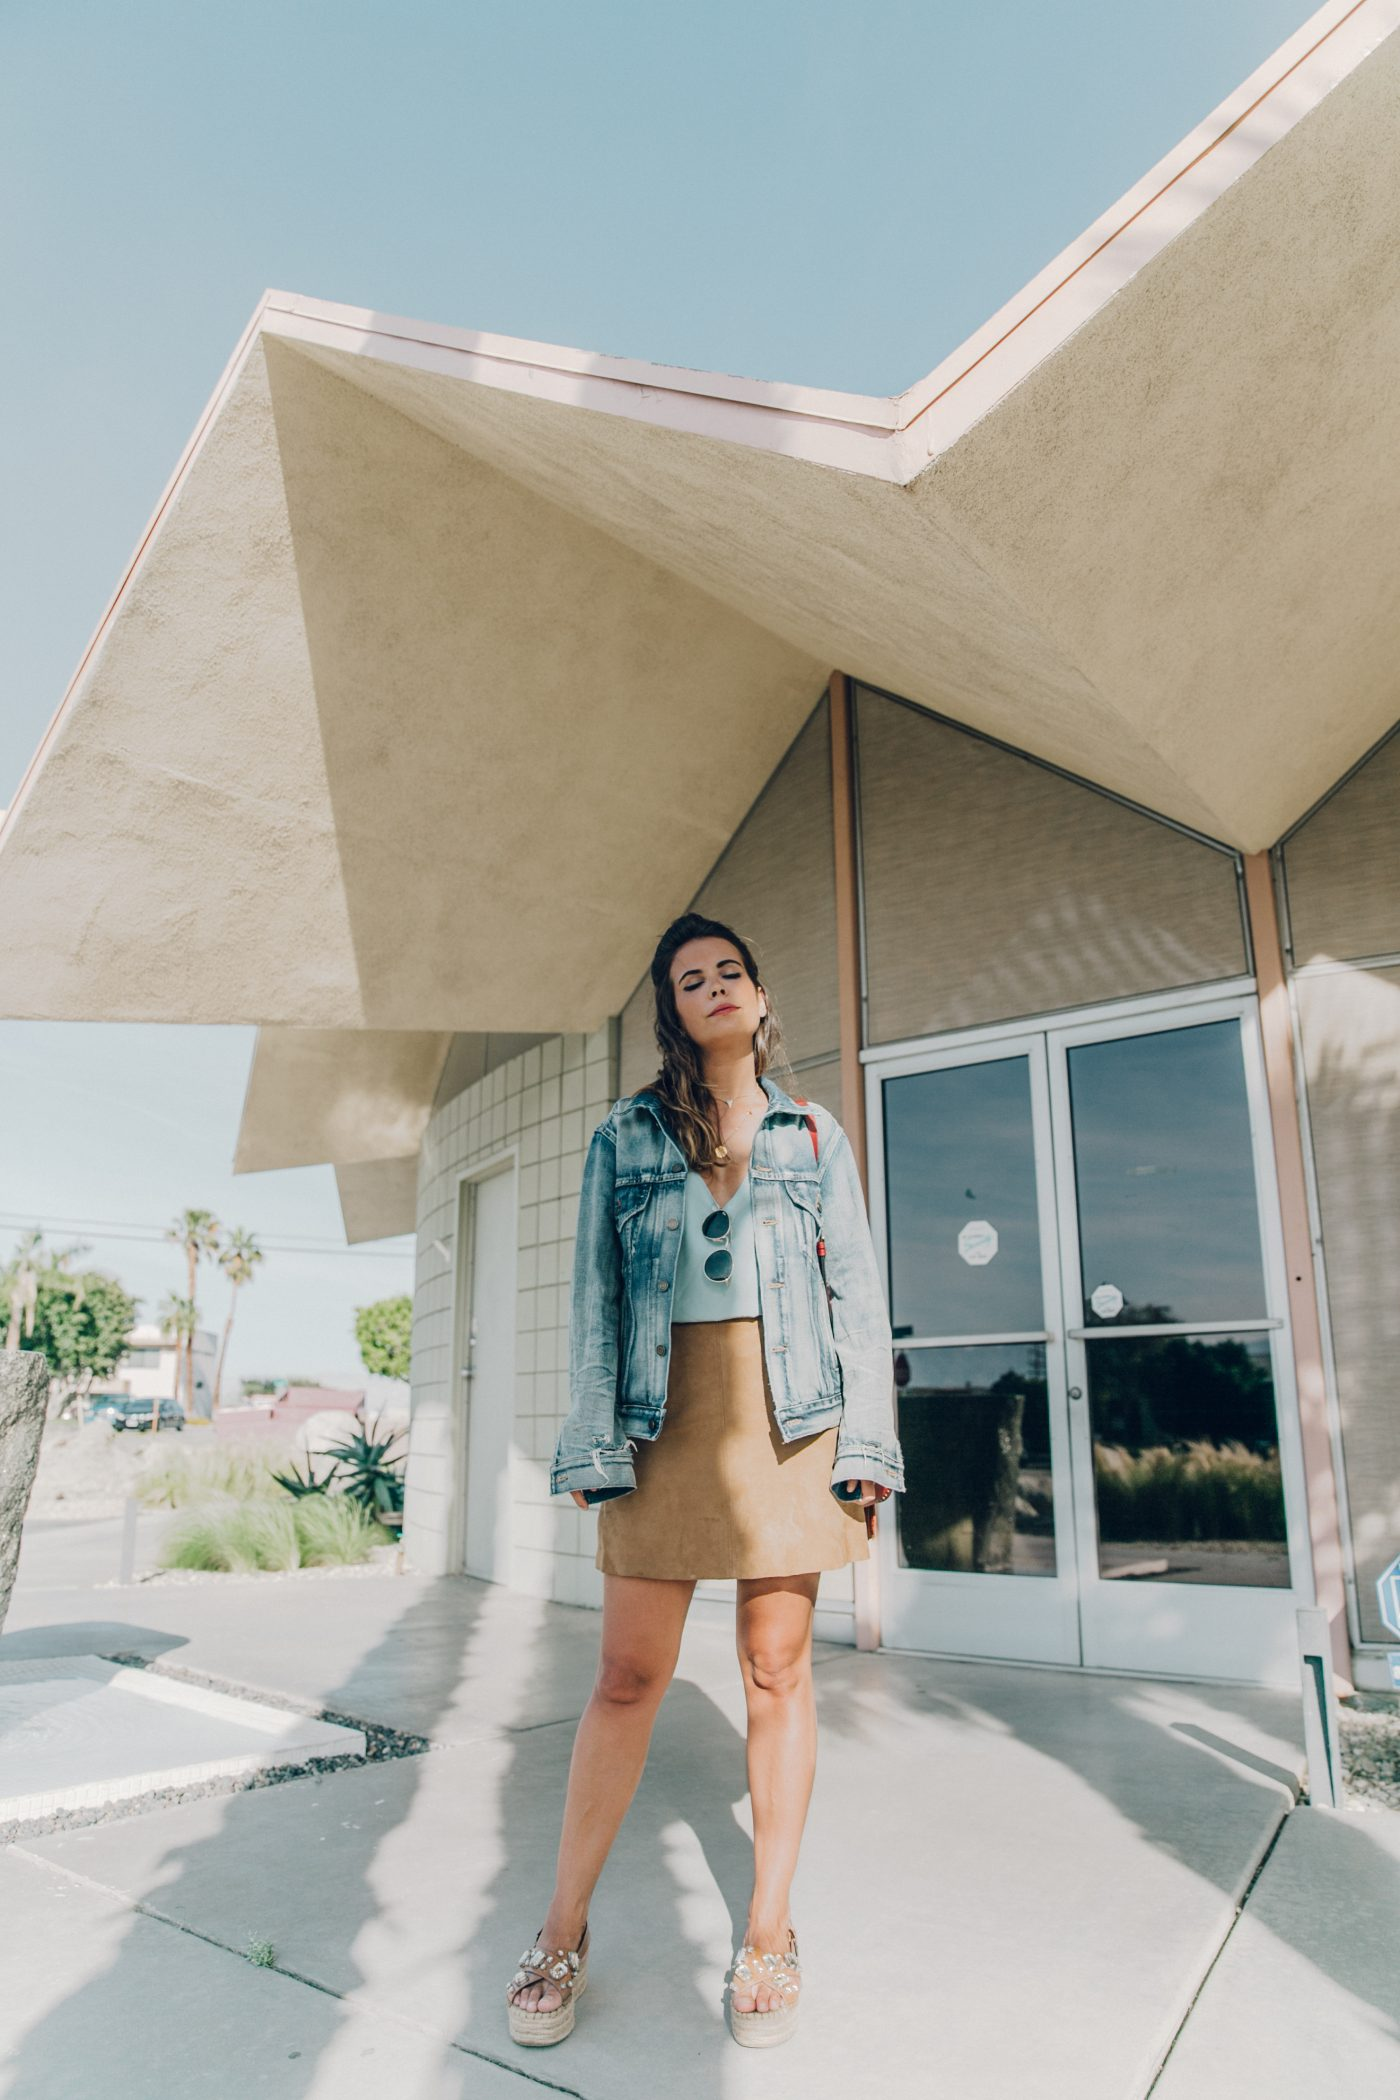 Denim_Jacket-Saint_Laurent-Chloe_Top-Suede_Skirt-Chloe_Hudson_Bag-Espadrilles-Coachella-Palm_Springs-Outfit-Collage_Vintage-8